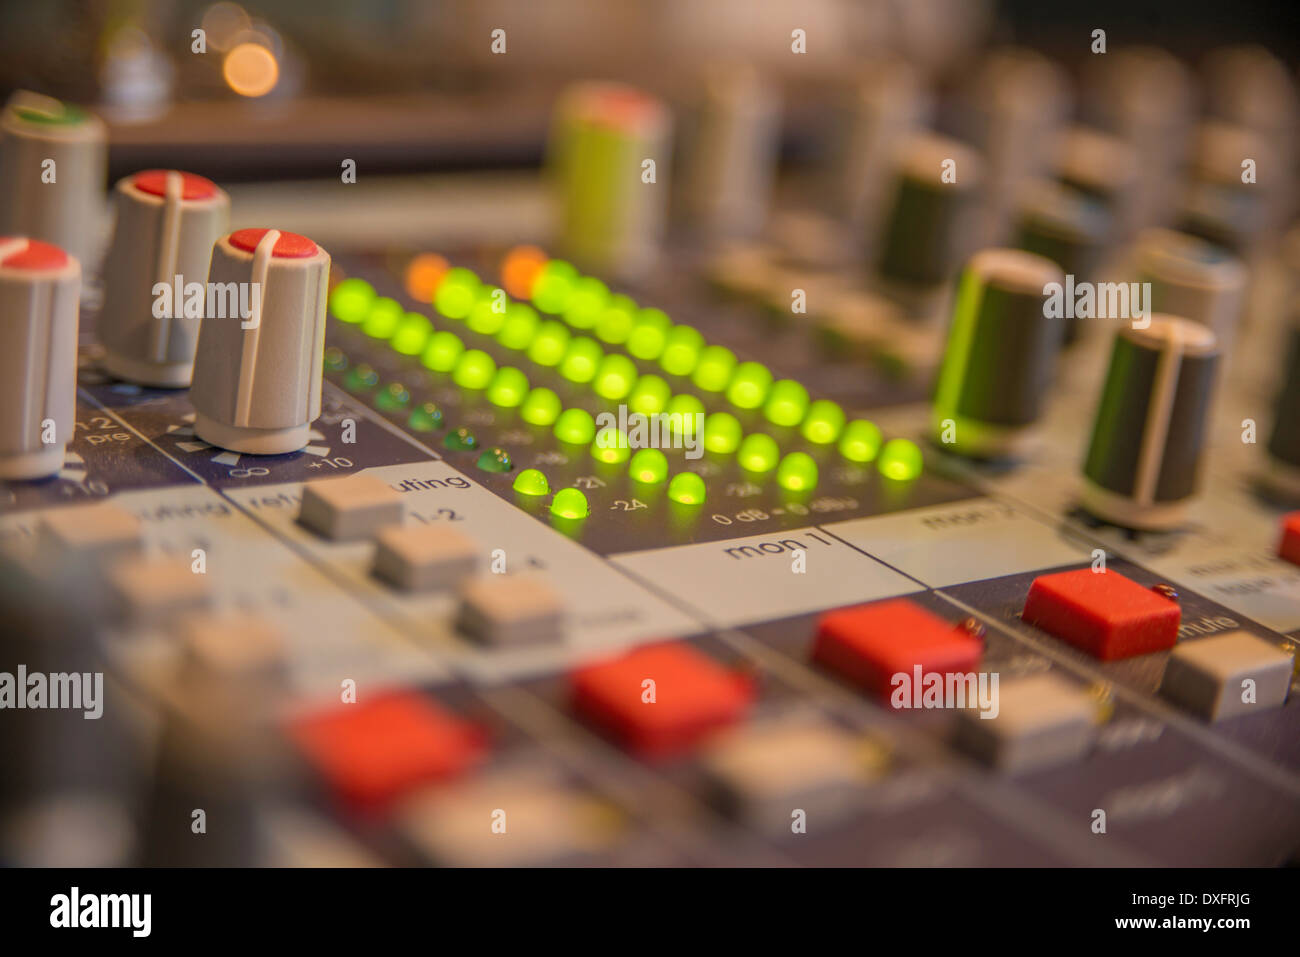 Sound Board Stock Photos & Sound Board Stock Images - Alamy